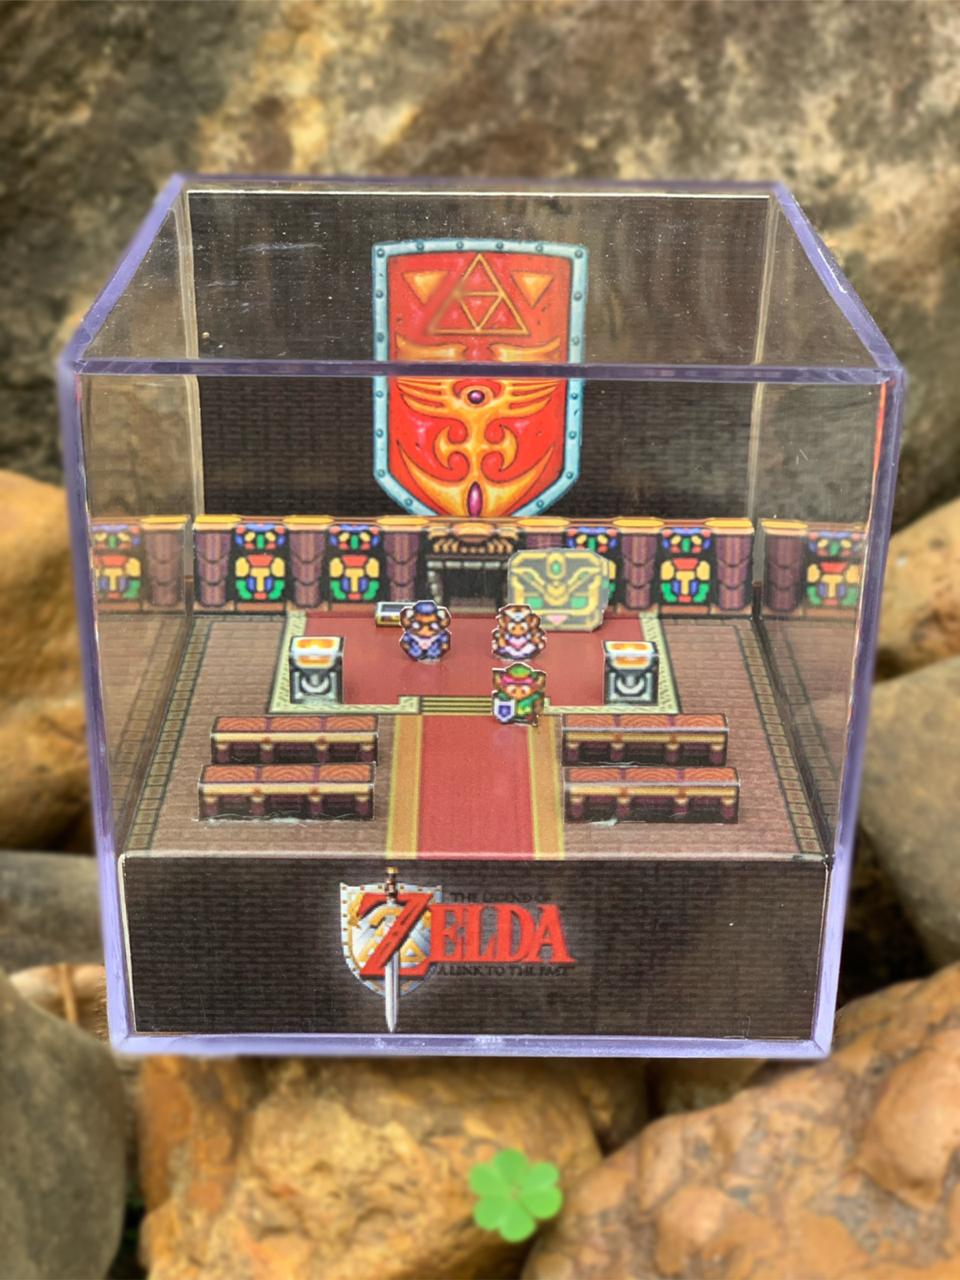 Mini Cubo 3D: The Legends Of Zelda: A Link To The Past (Snes)